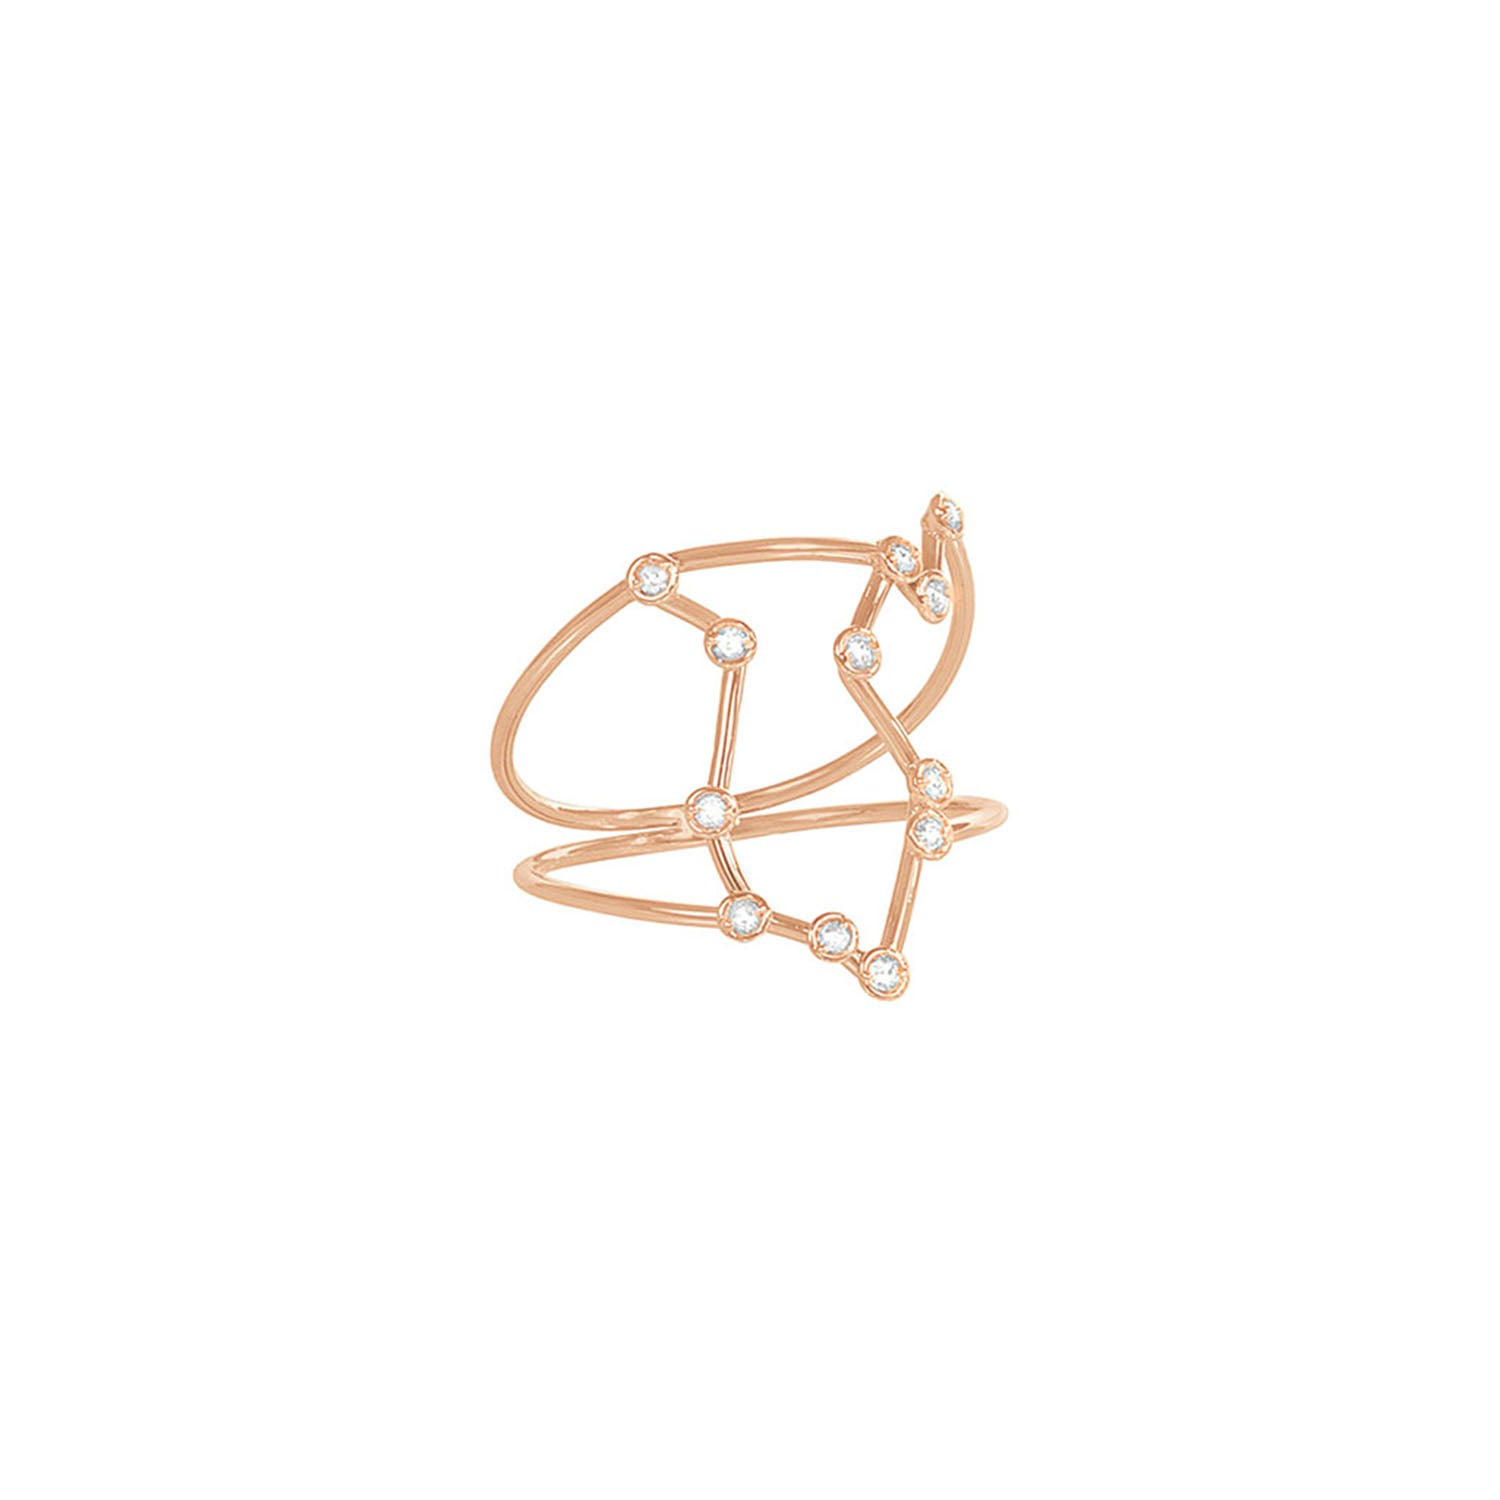 Gold & White Diamond Aquarius Constellation Ring by Jessie Ve for Broken English Jewelry